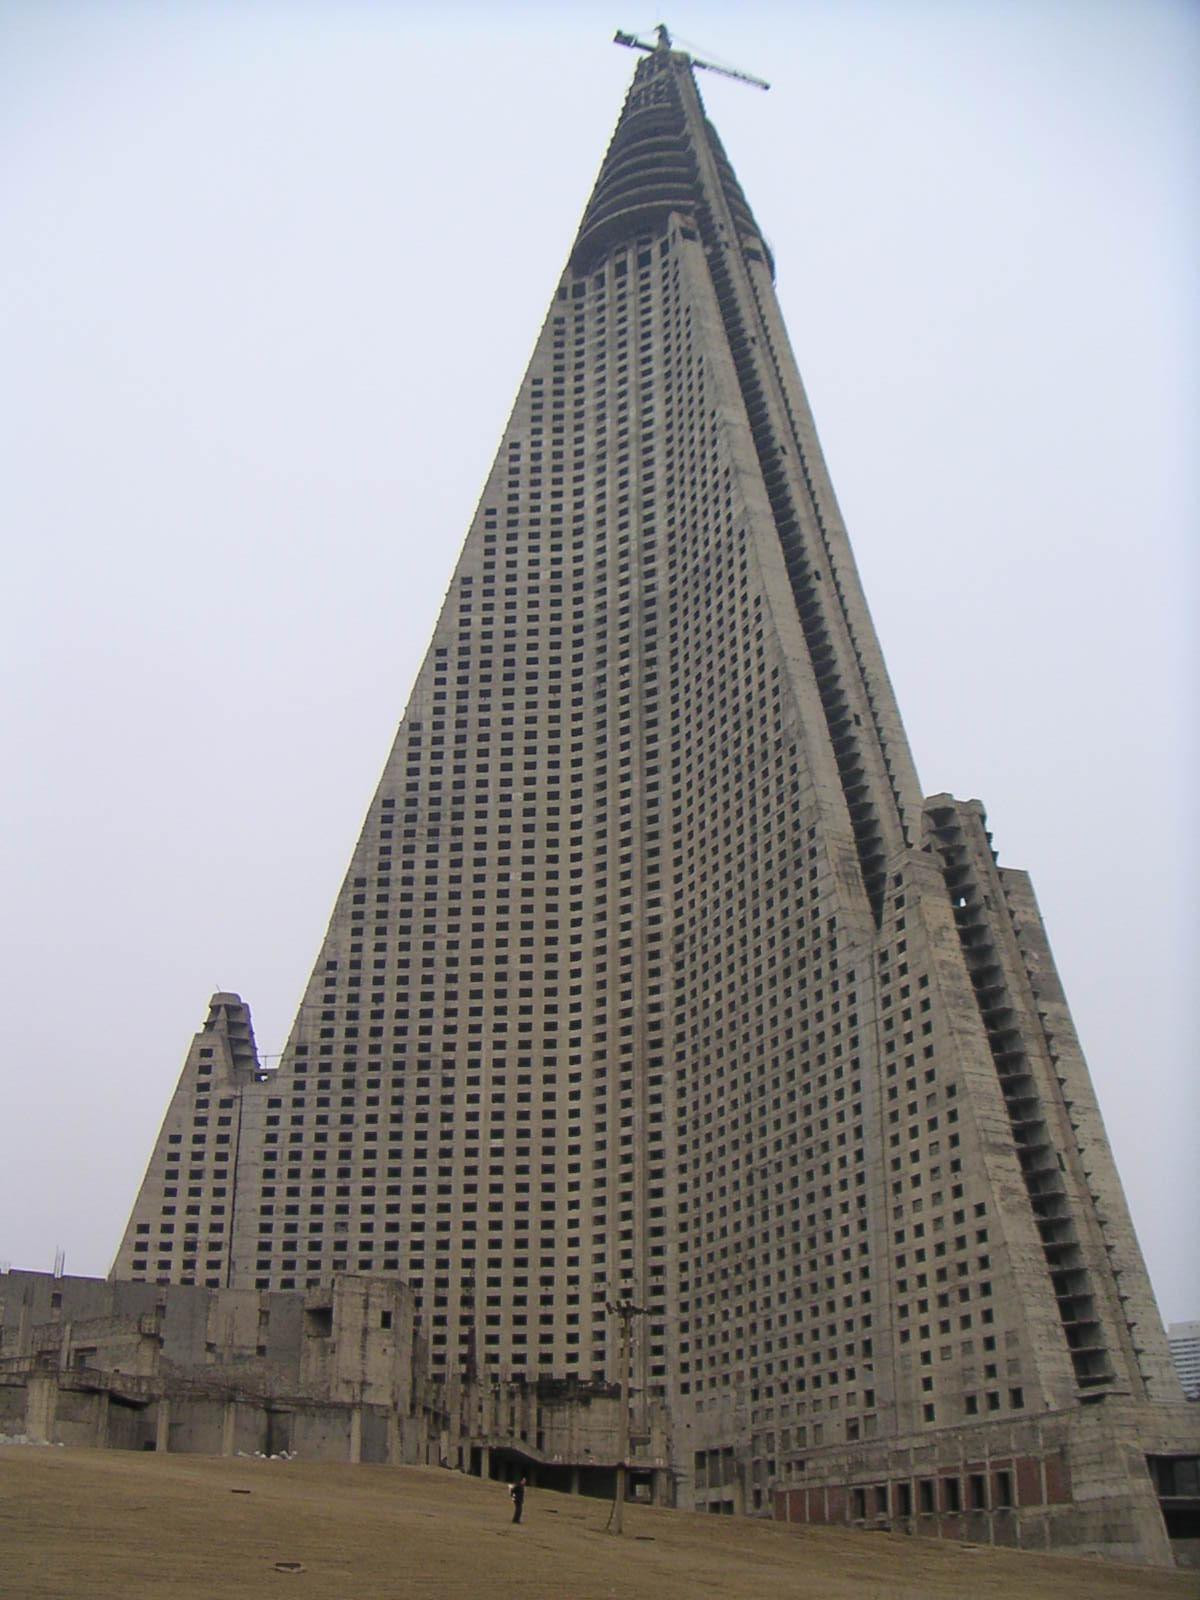 The Ryugyong Hotel, North Korea